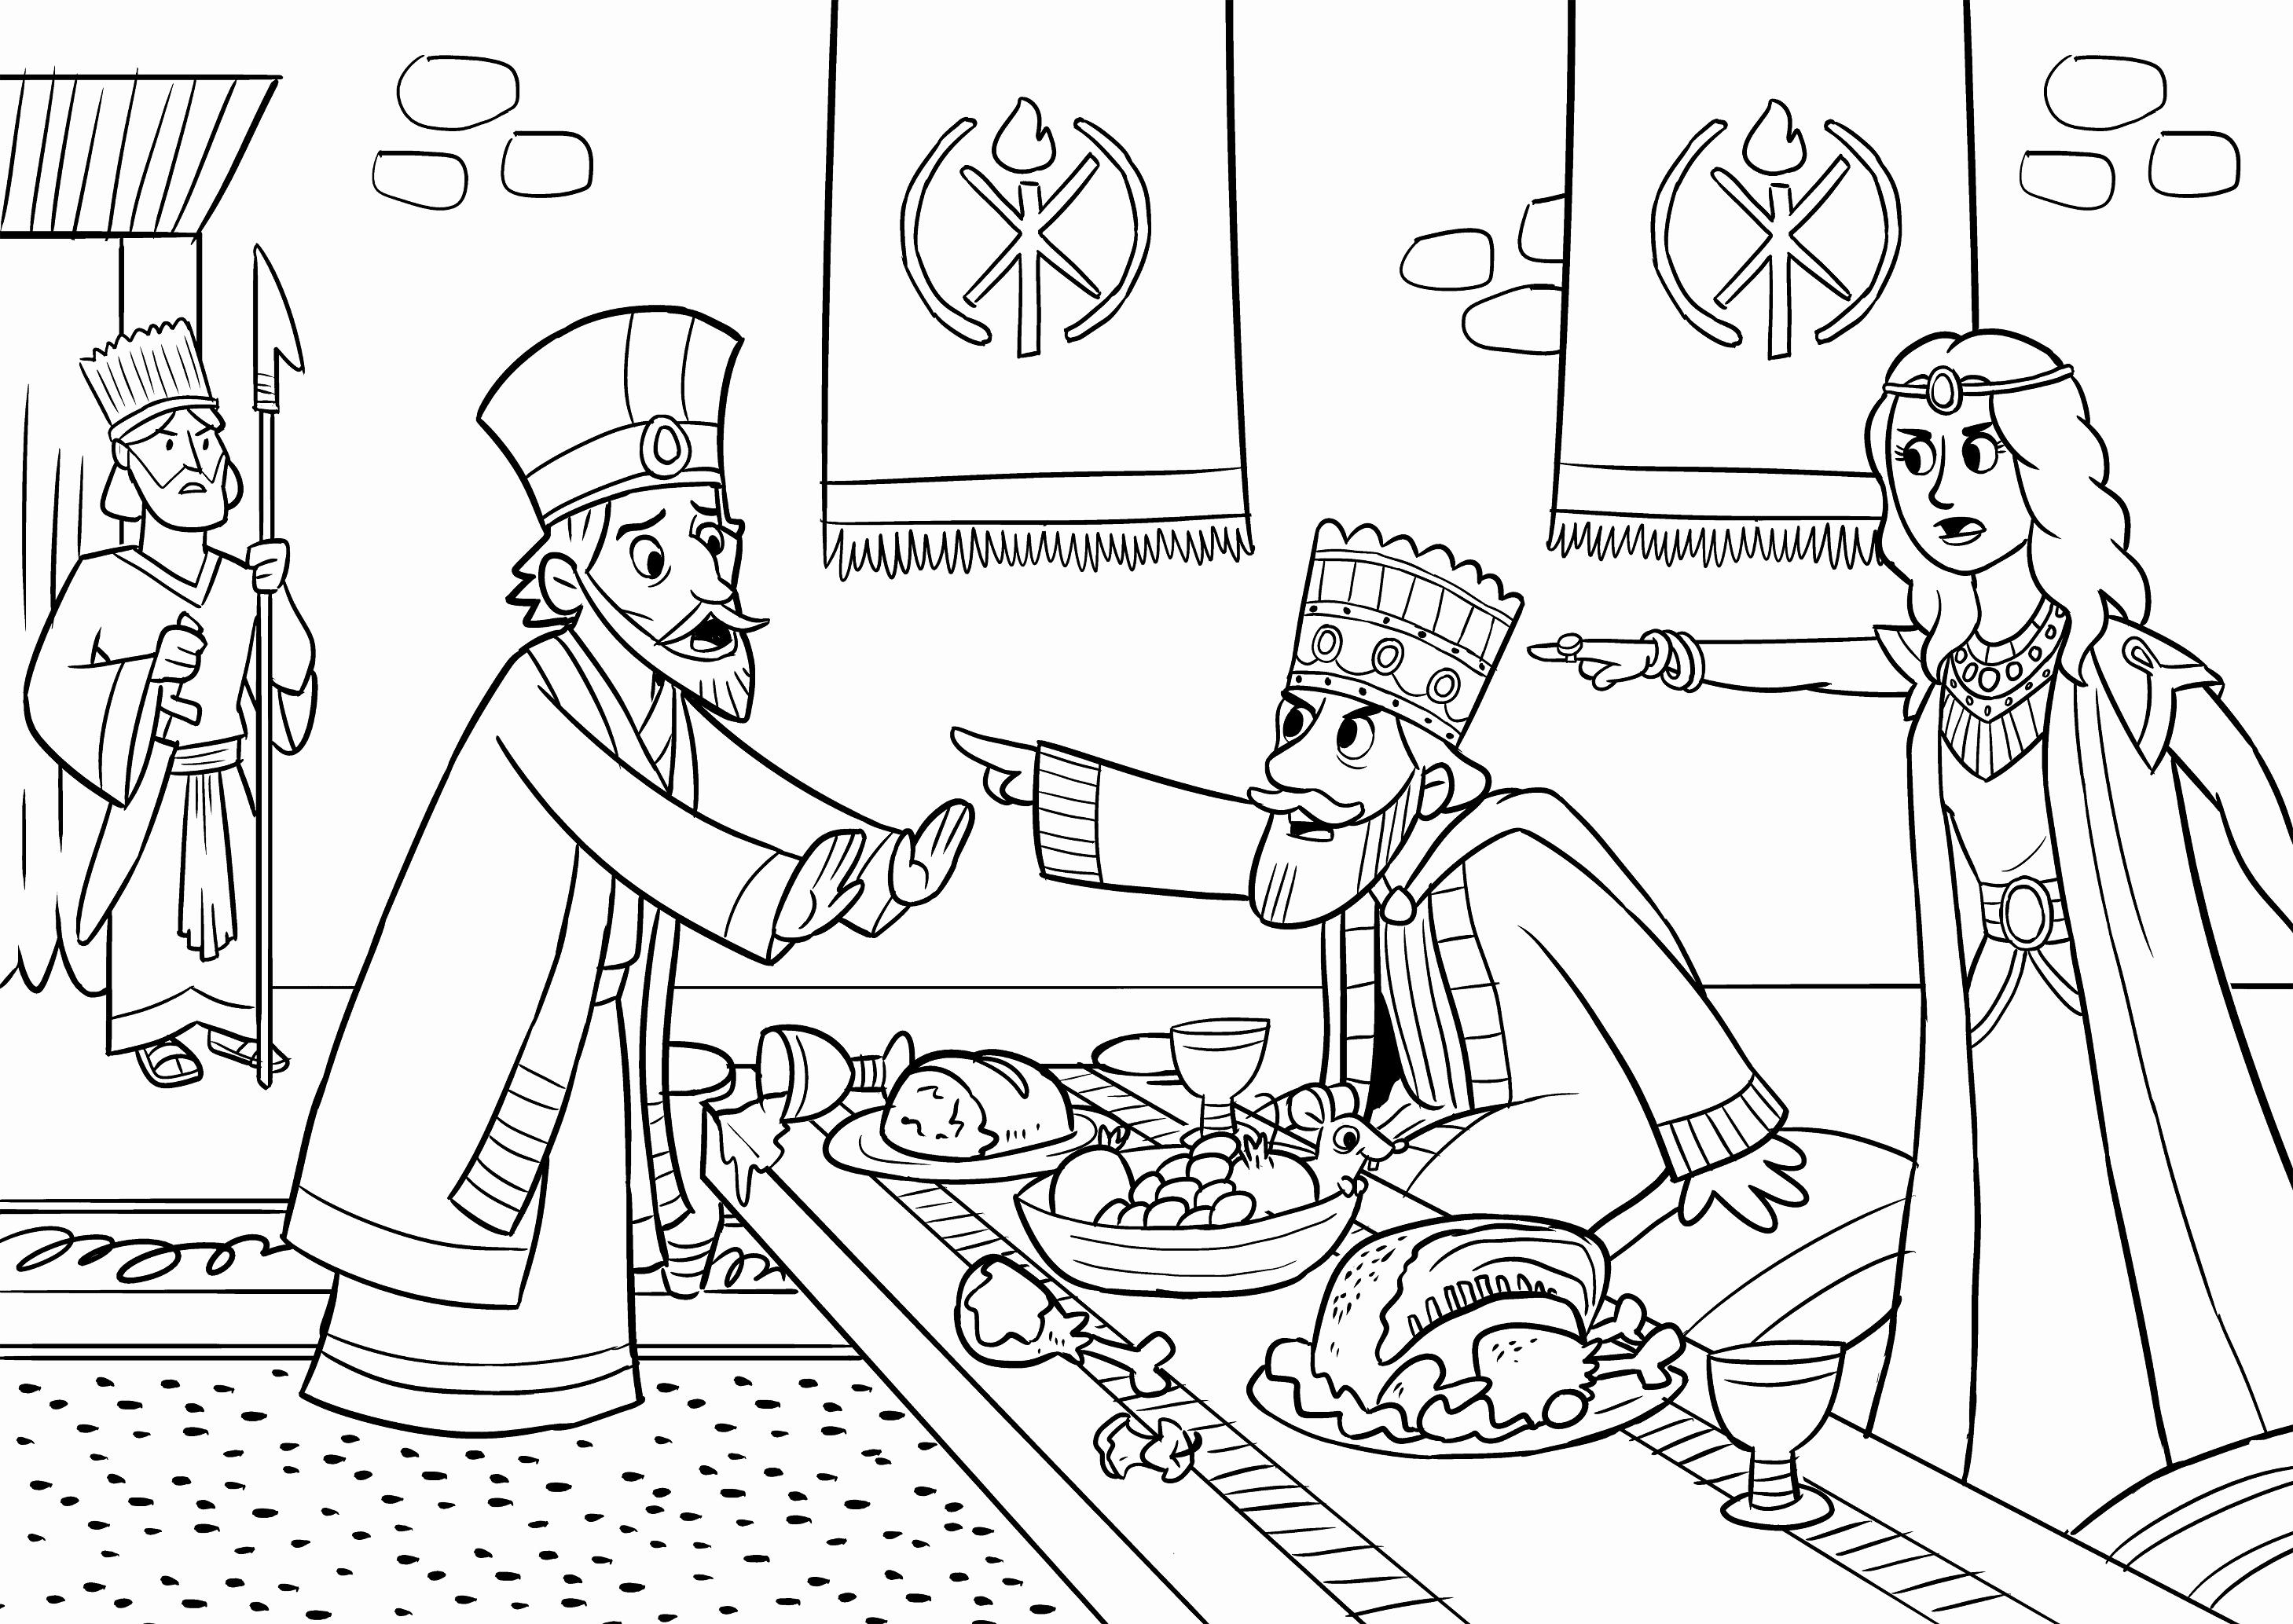 queen esther coloring page queen esther coloring page for children free to print and coloring queen esther page